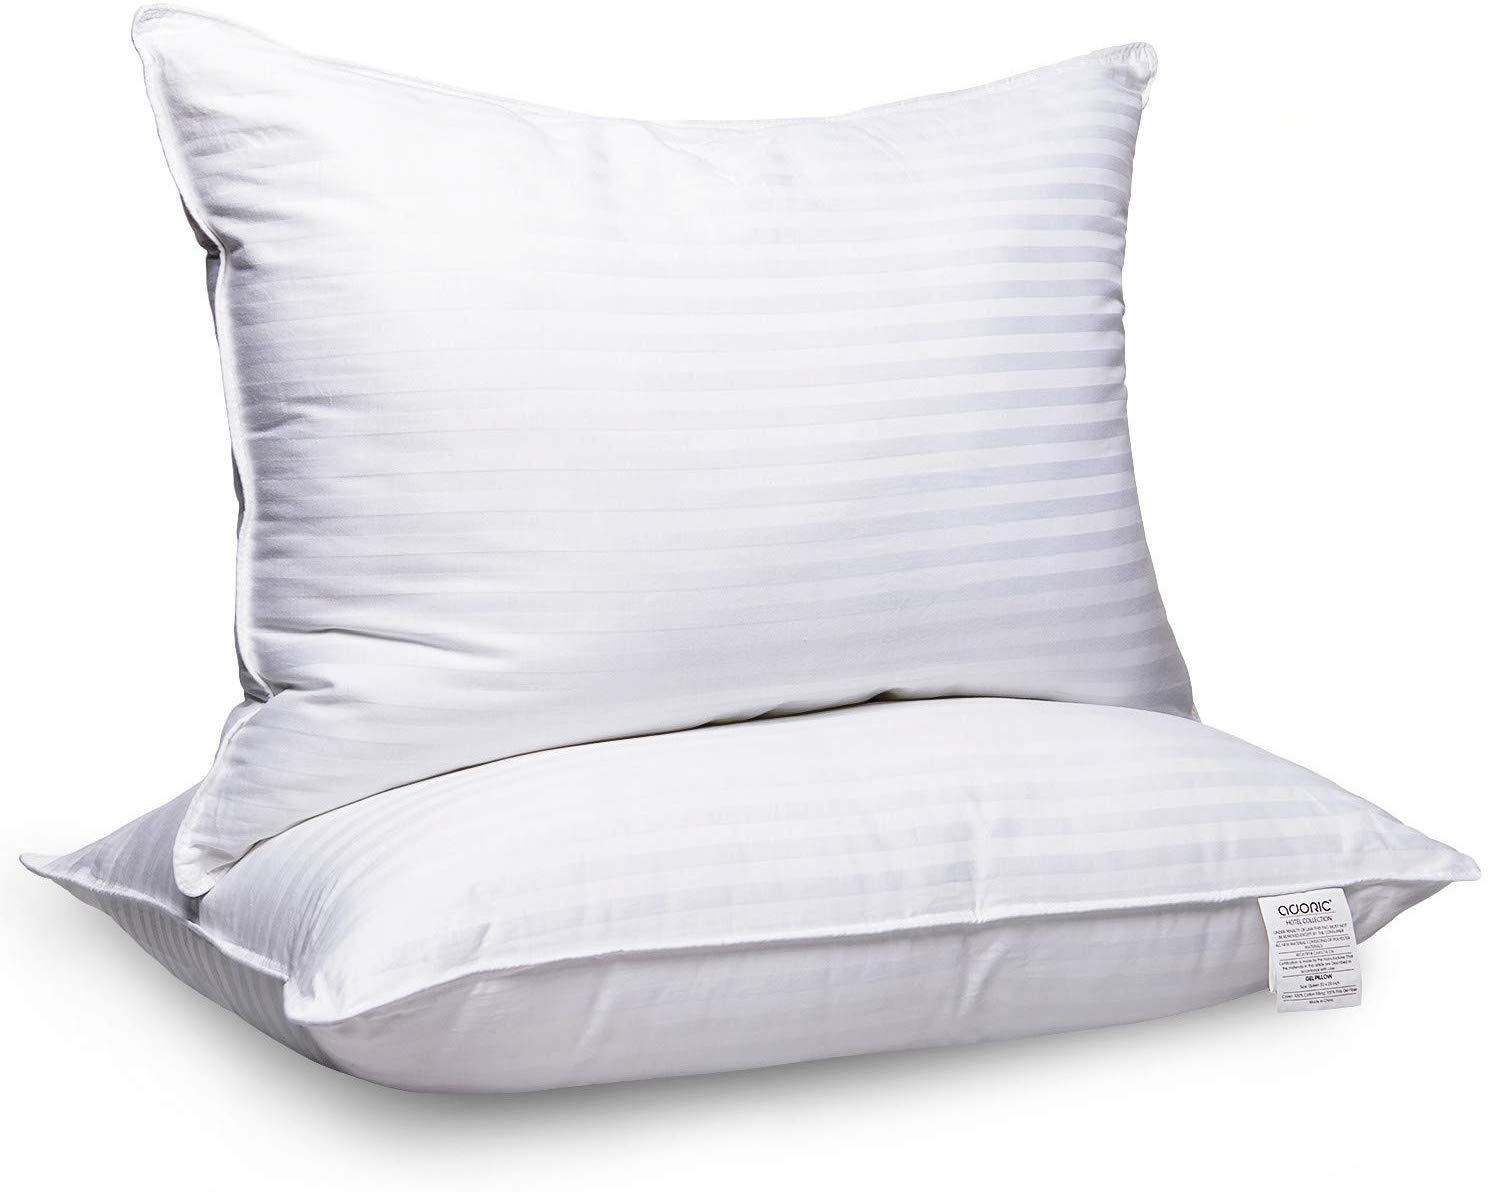 Adoric Pillows for Sleeping Topratedhomeproducts